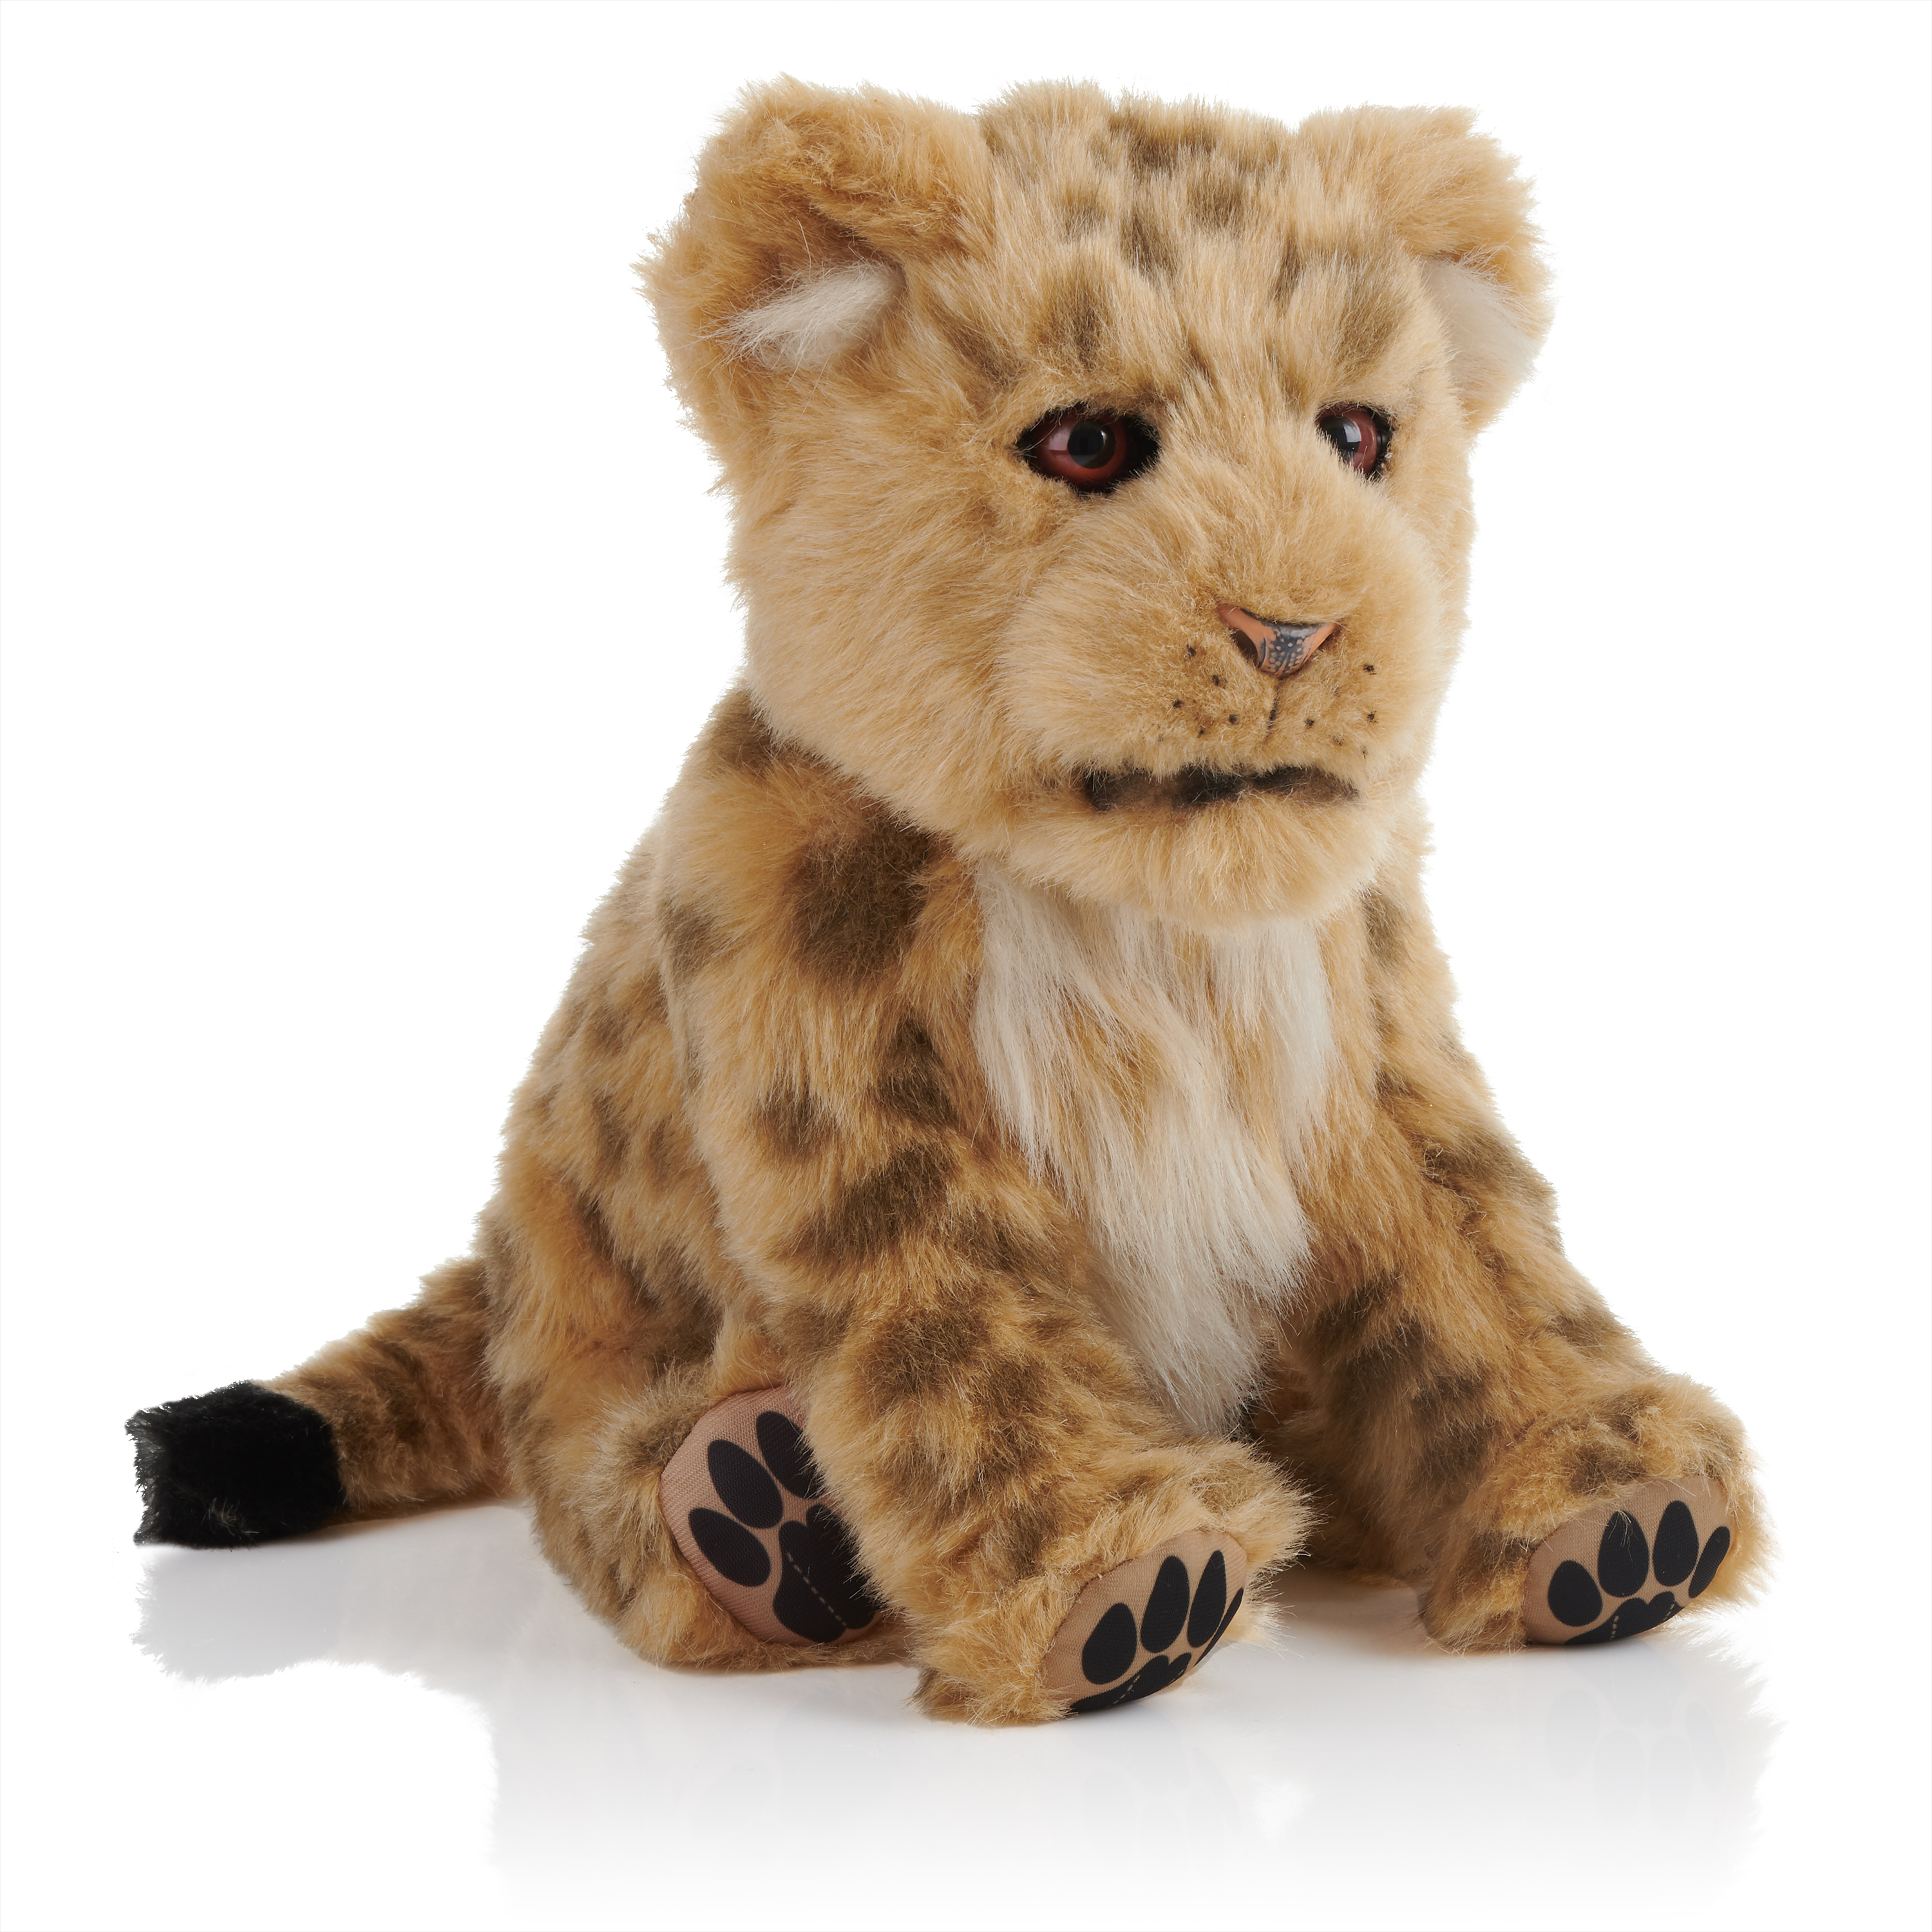 Alive Cubs - Interactive Plush Cub - Lion Cub By WowWee